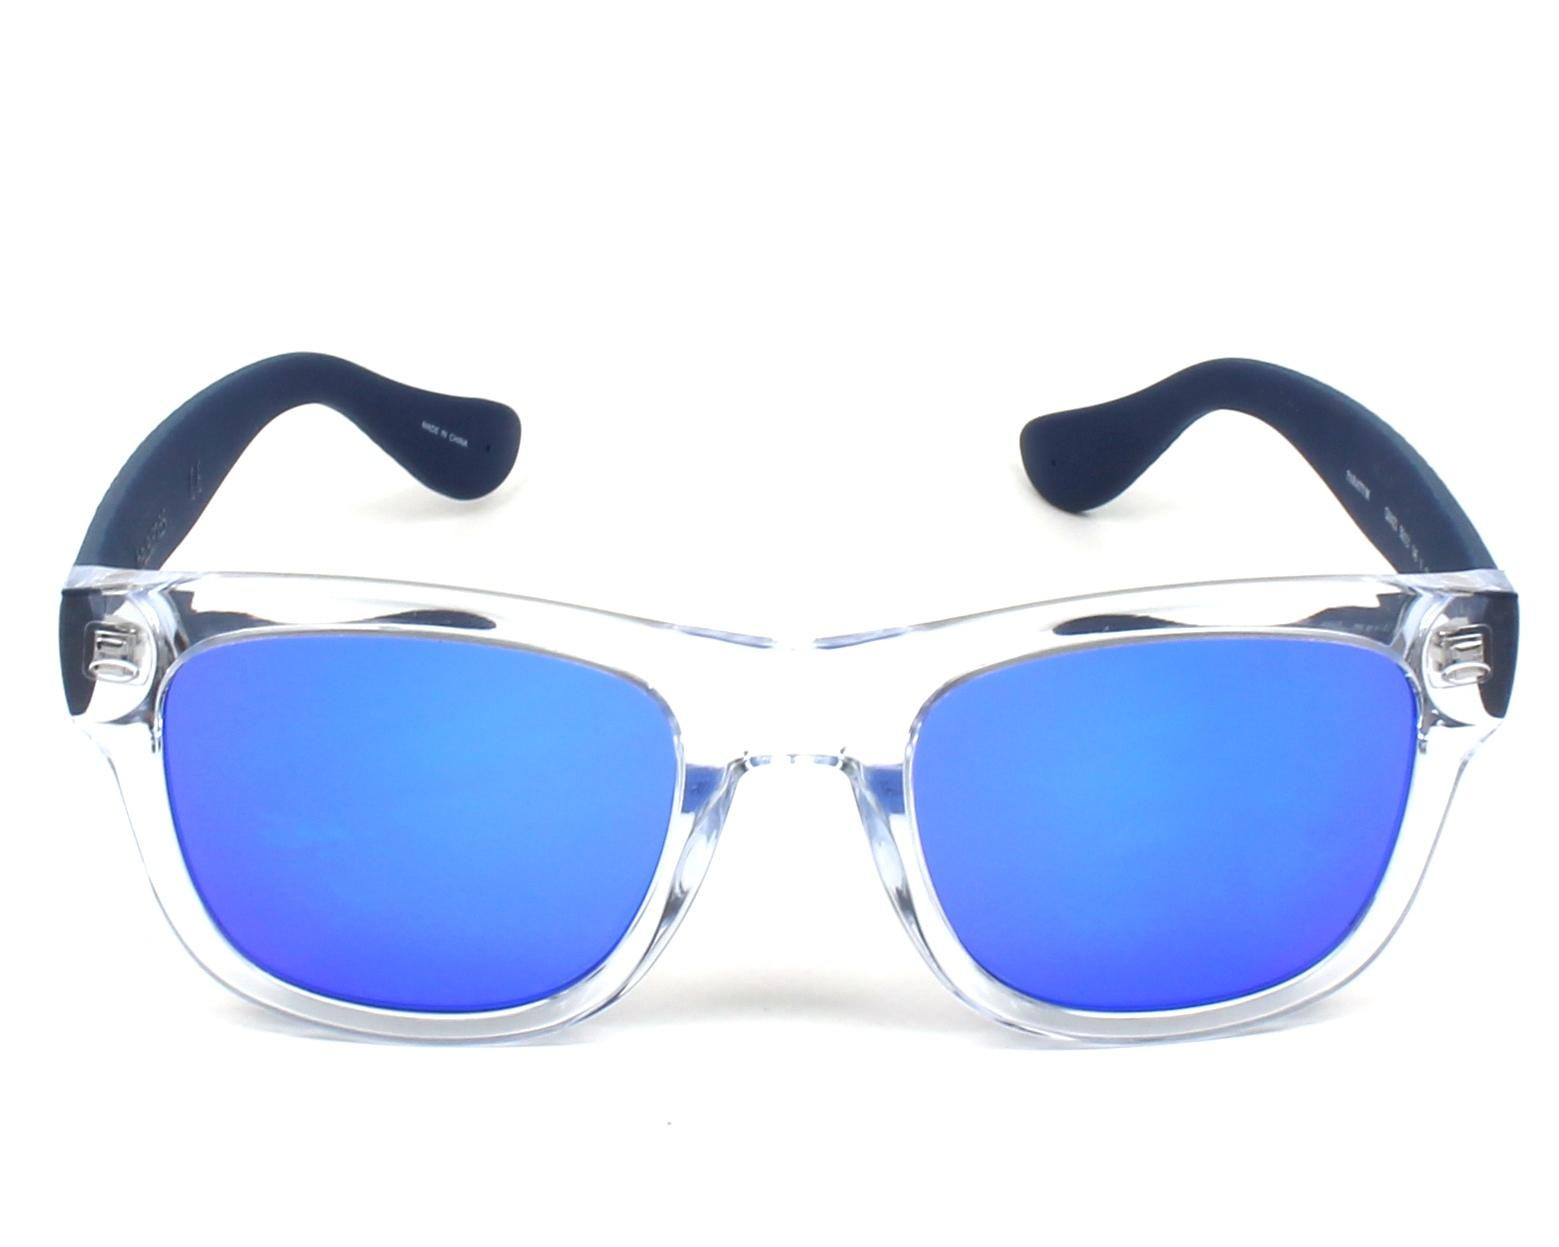 92715e47f97 Sunglasses Havaianas PARATY-M QM4 Z0 50-21 Crystal Blue front view